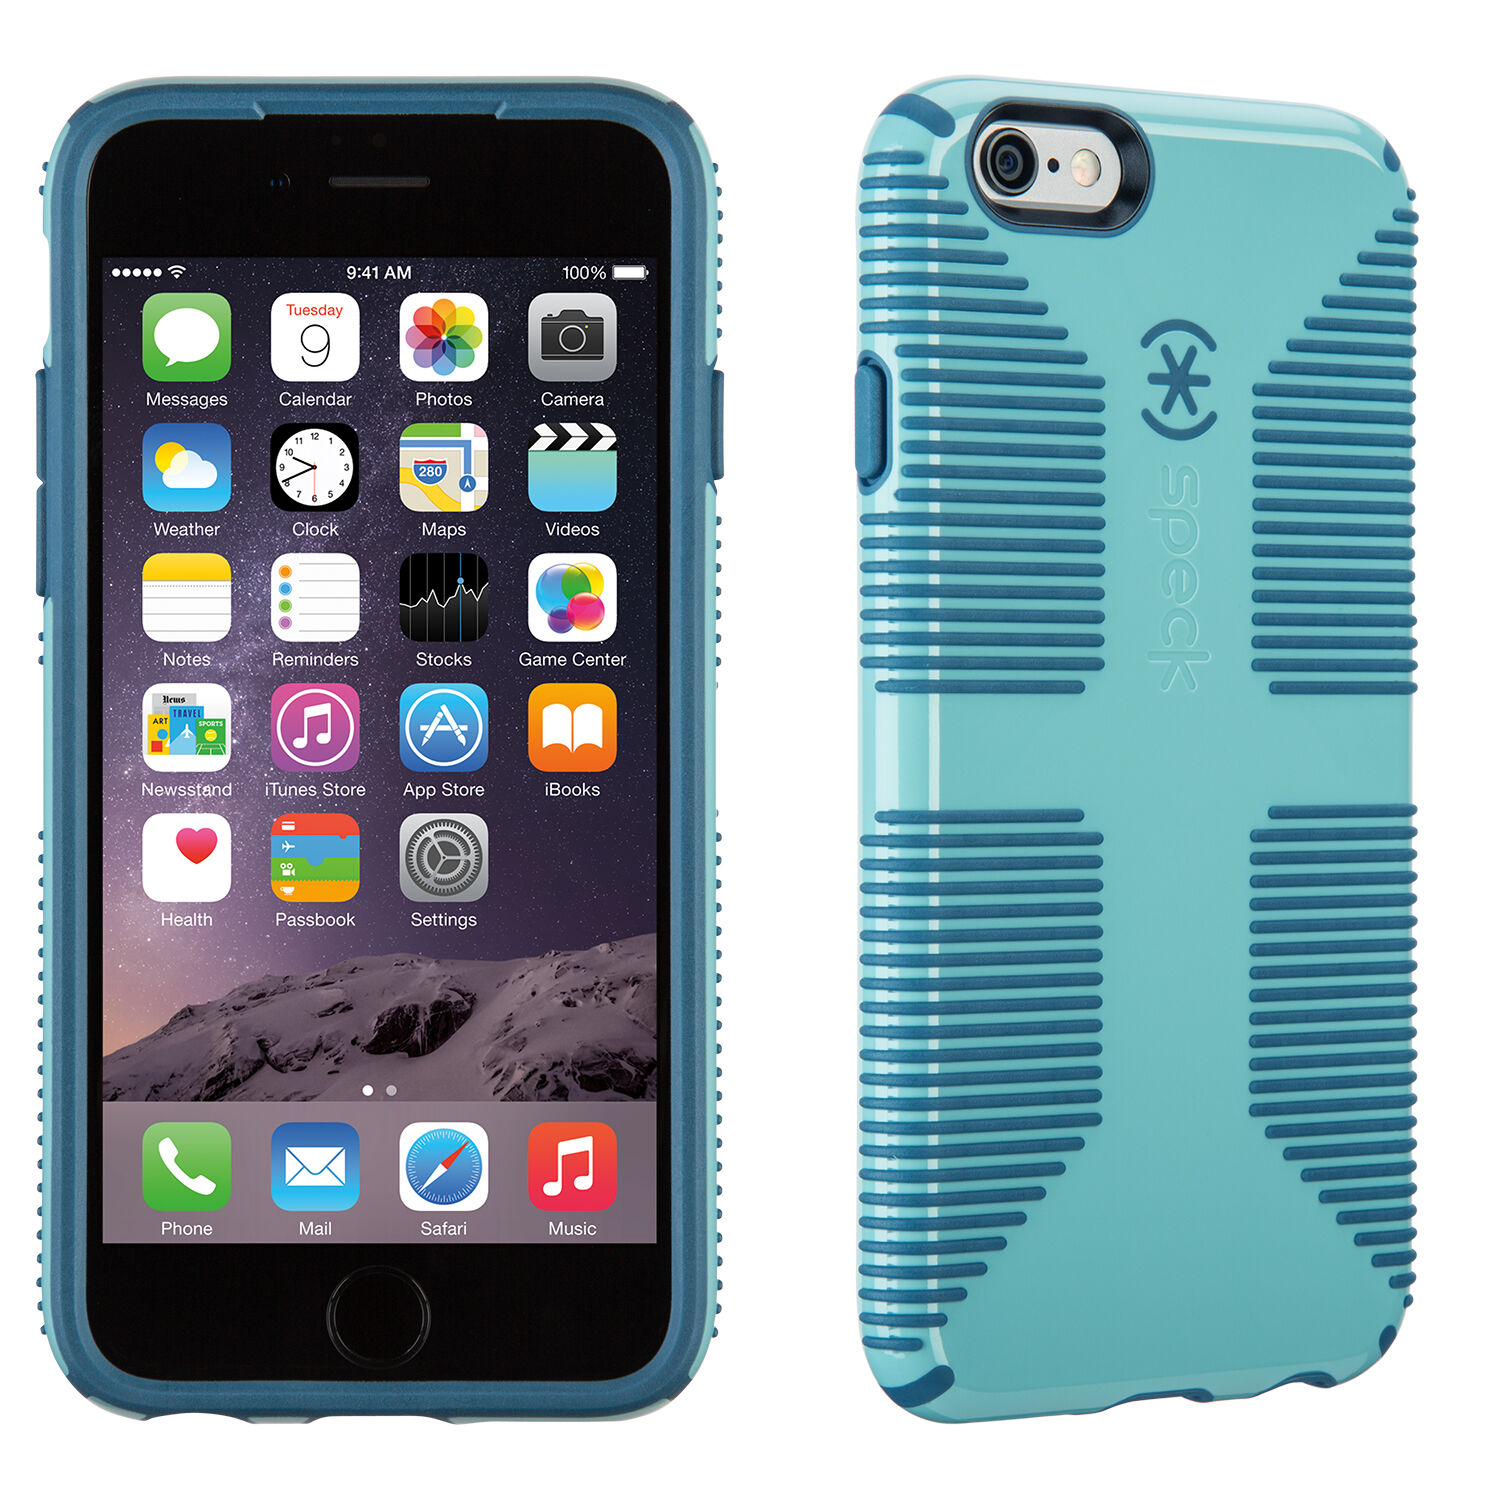 Candyshell Grip Iphone C Cases